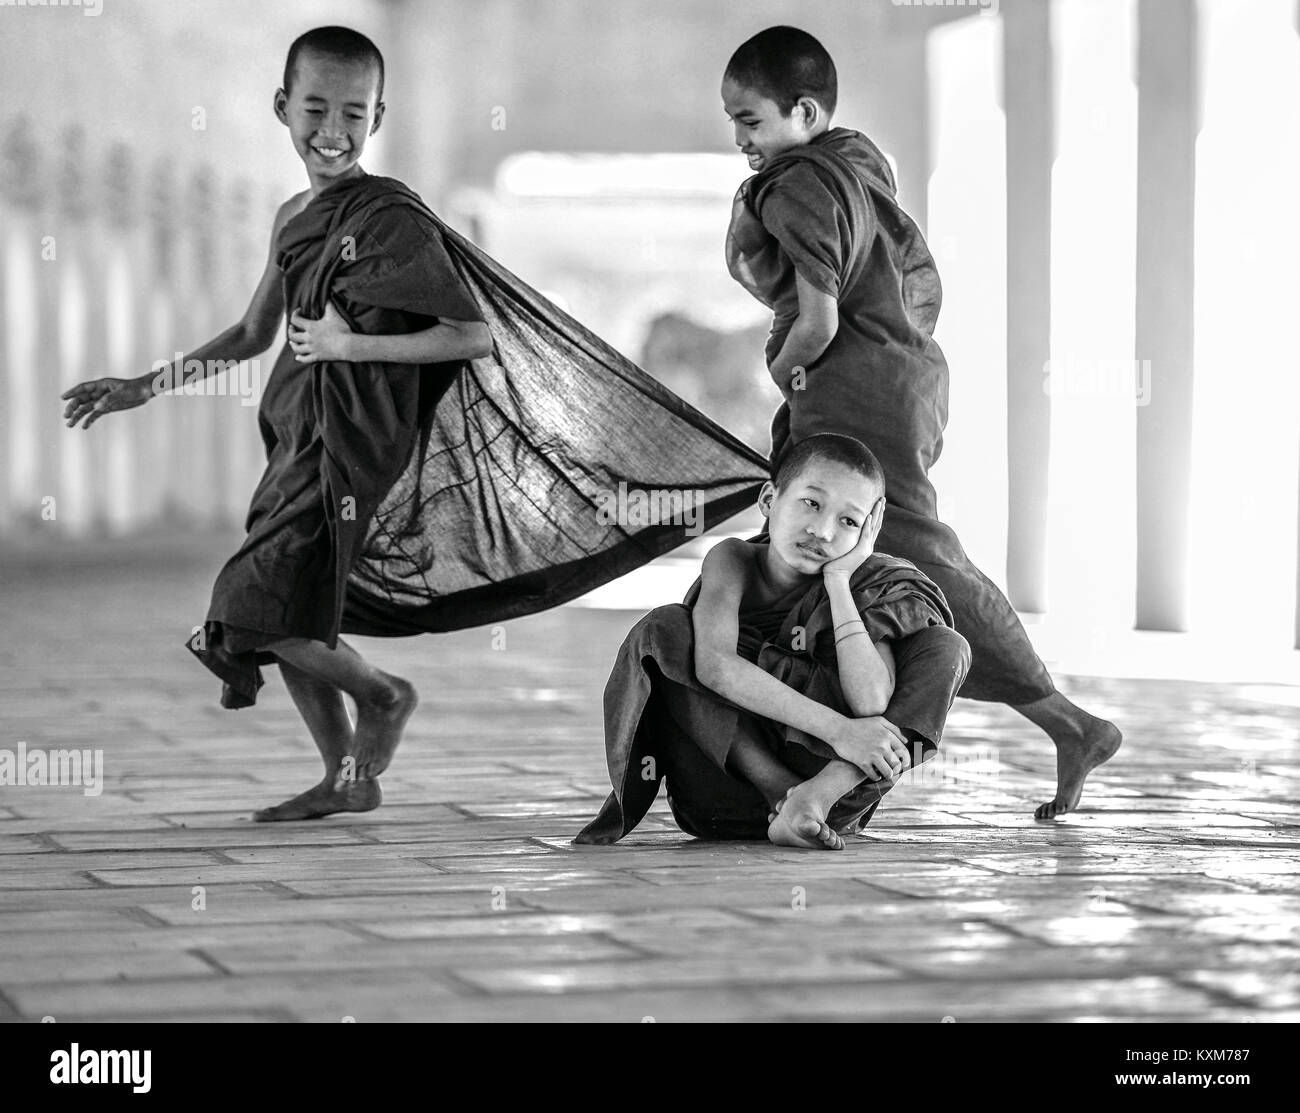 Novice Monks having fun in temple corridor, Bagan, Myanmar - Stock Image